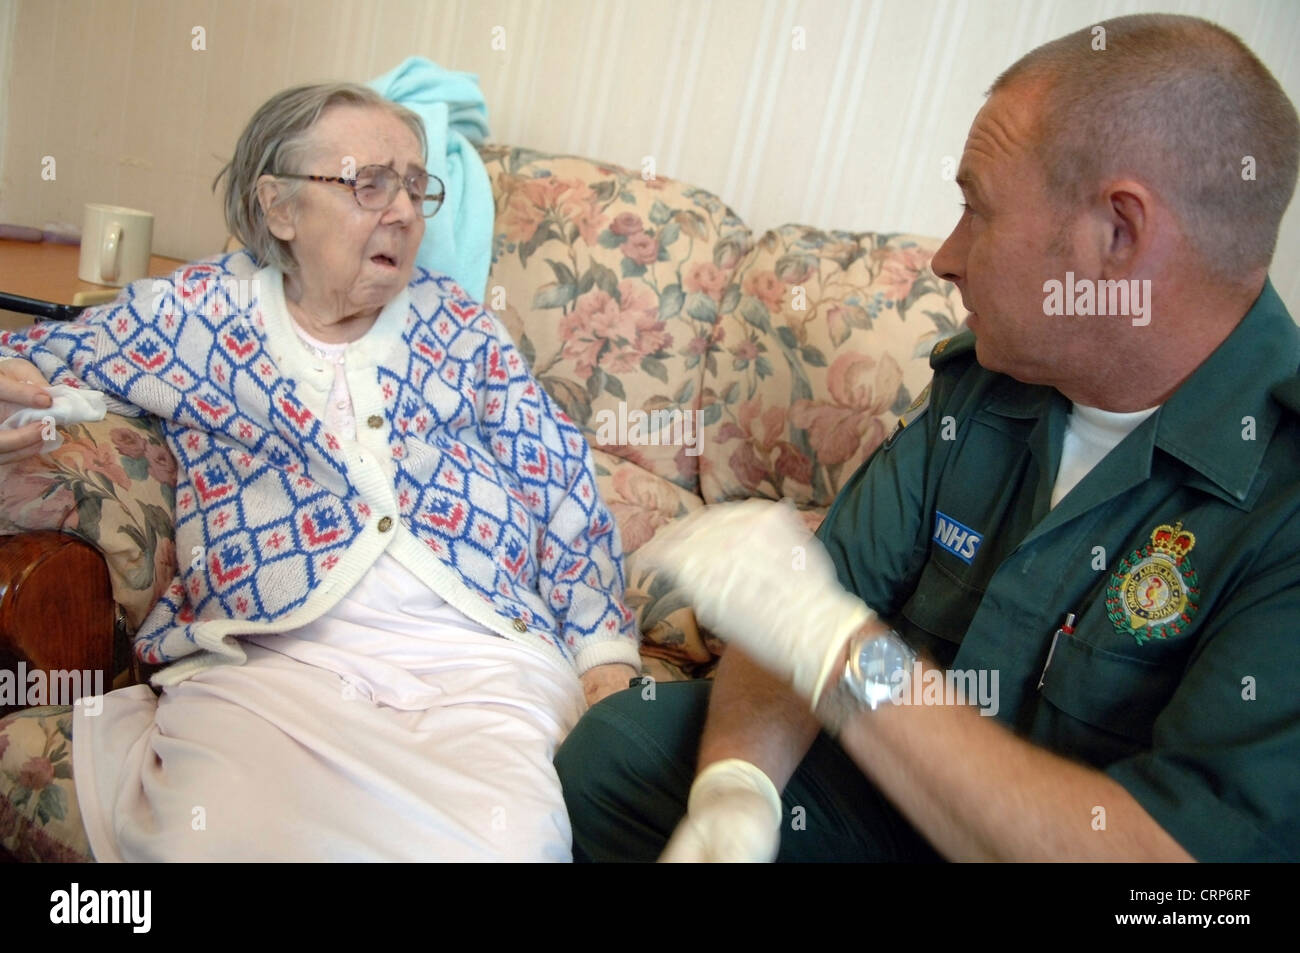 A paramedic from the NHS London Ambulance Service caring for an elderly woman. - Stock Image